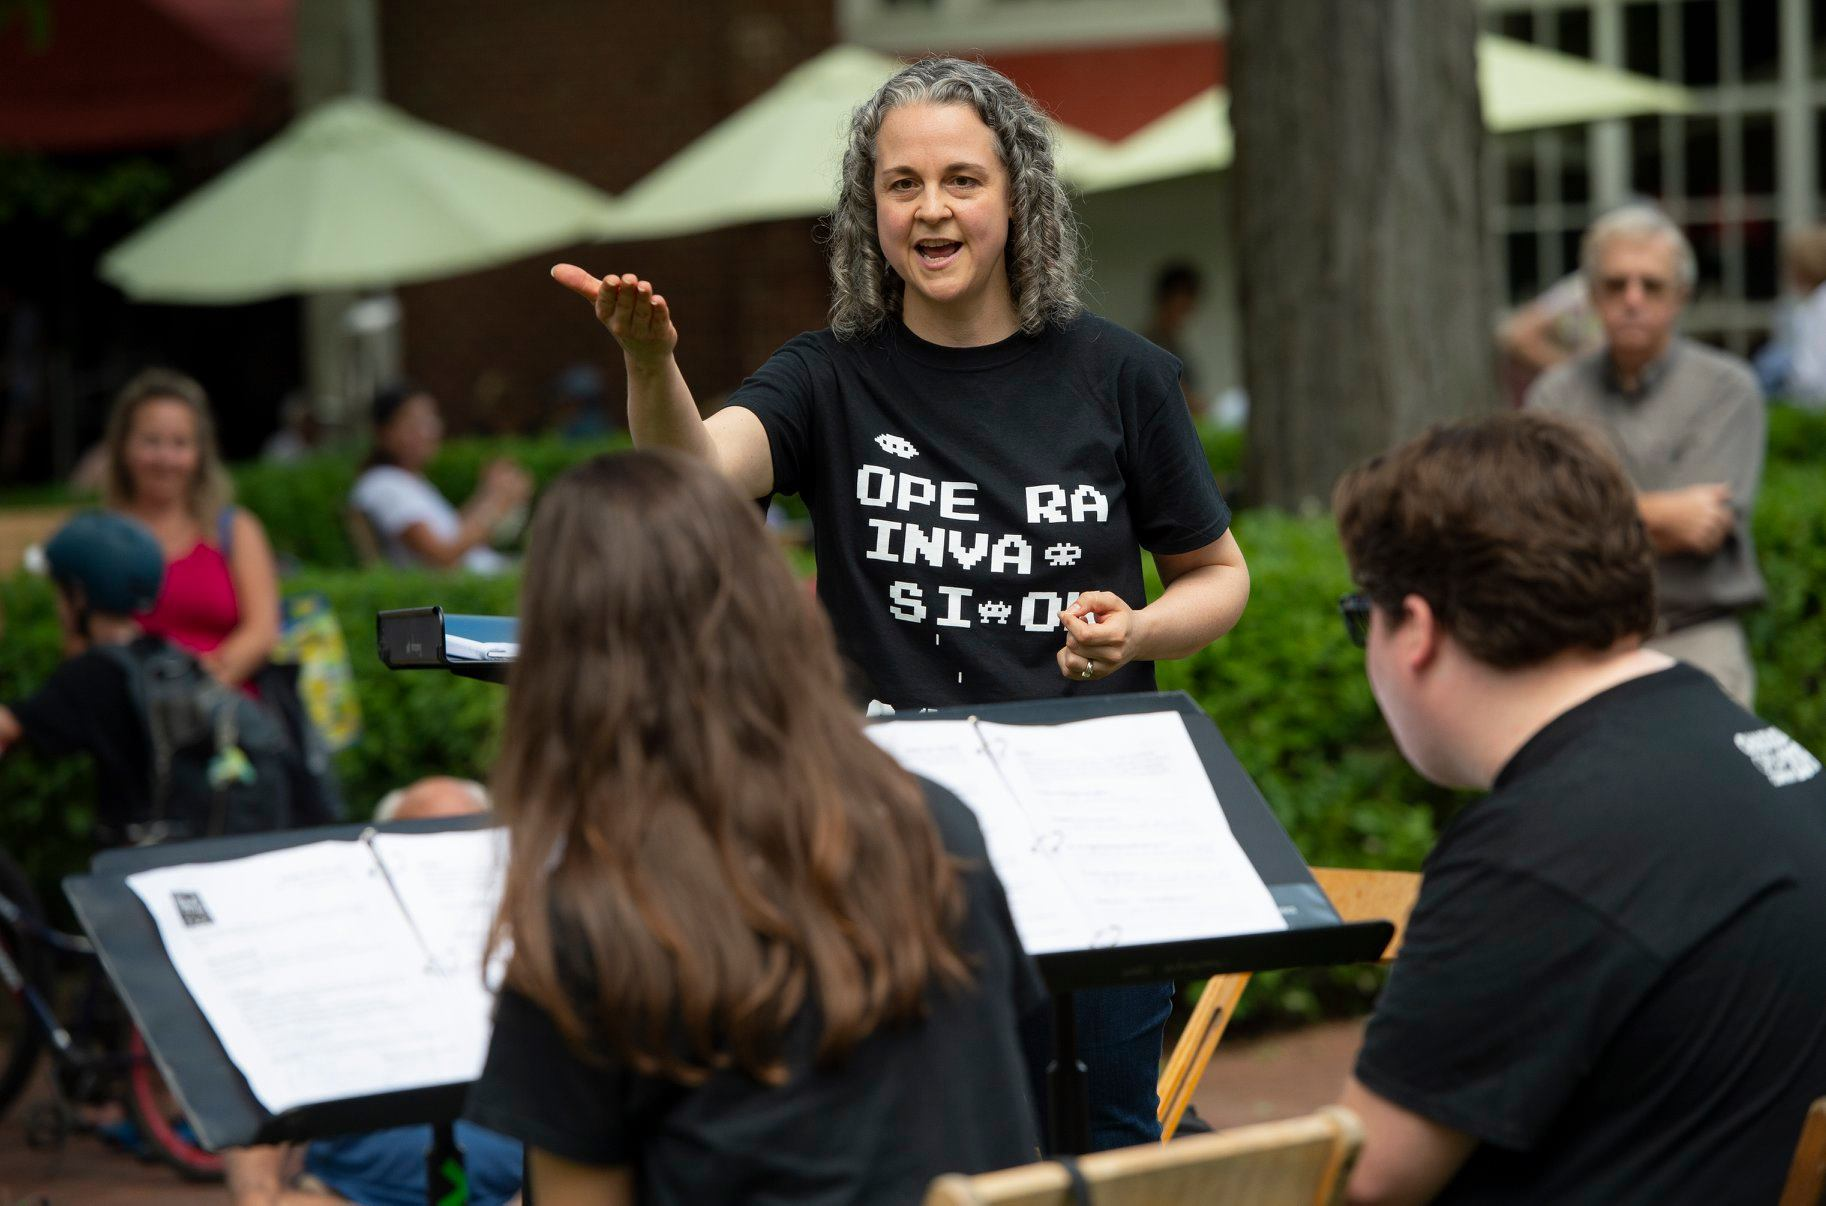 2019 Composer-in-Residence Gilda Lyons at the Chautauqua Institution, Chautauqua, NY